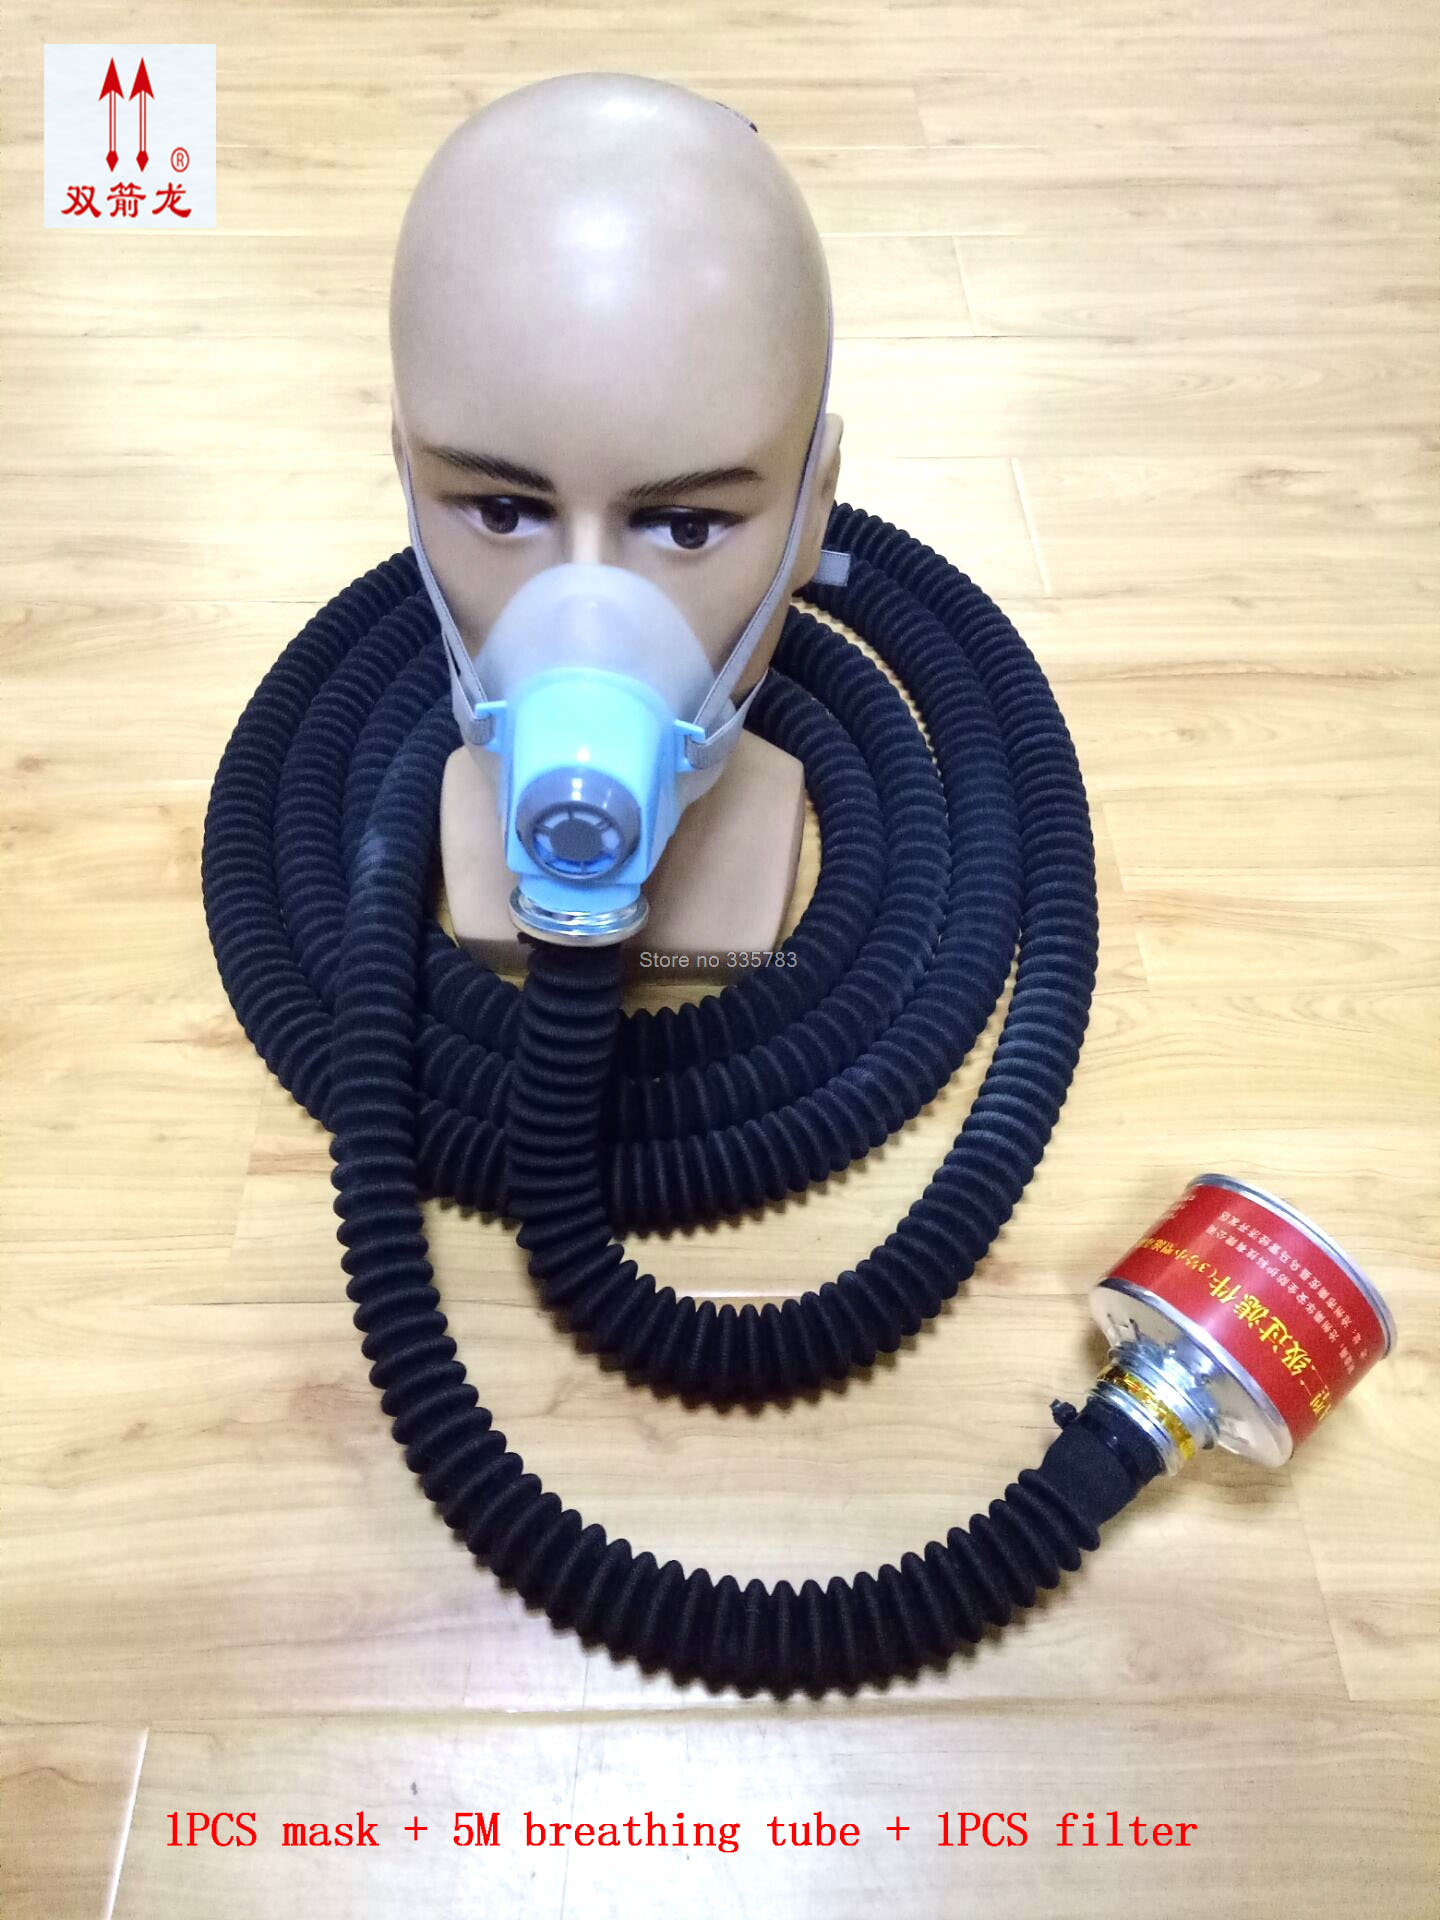 5M Breathing tube respirator gas mask high quality new gas mask tunnel basement Dangerous operation gas